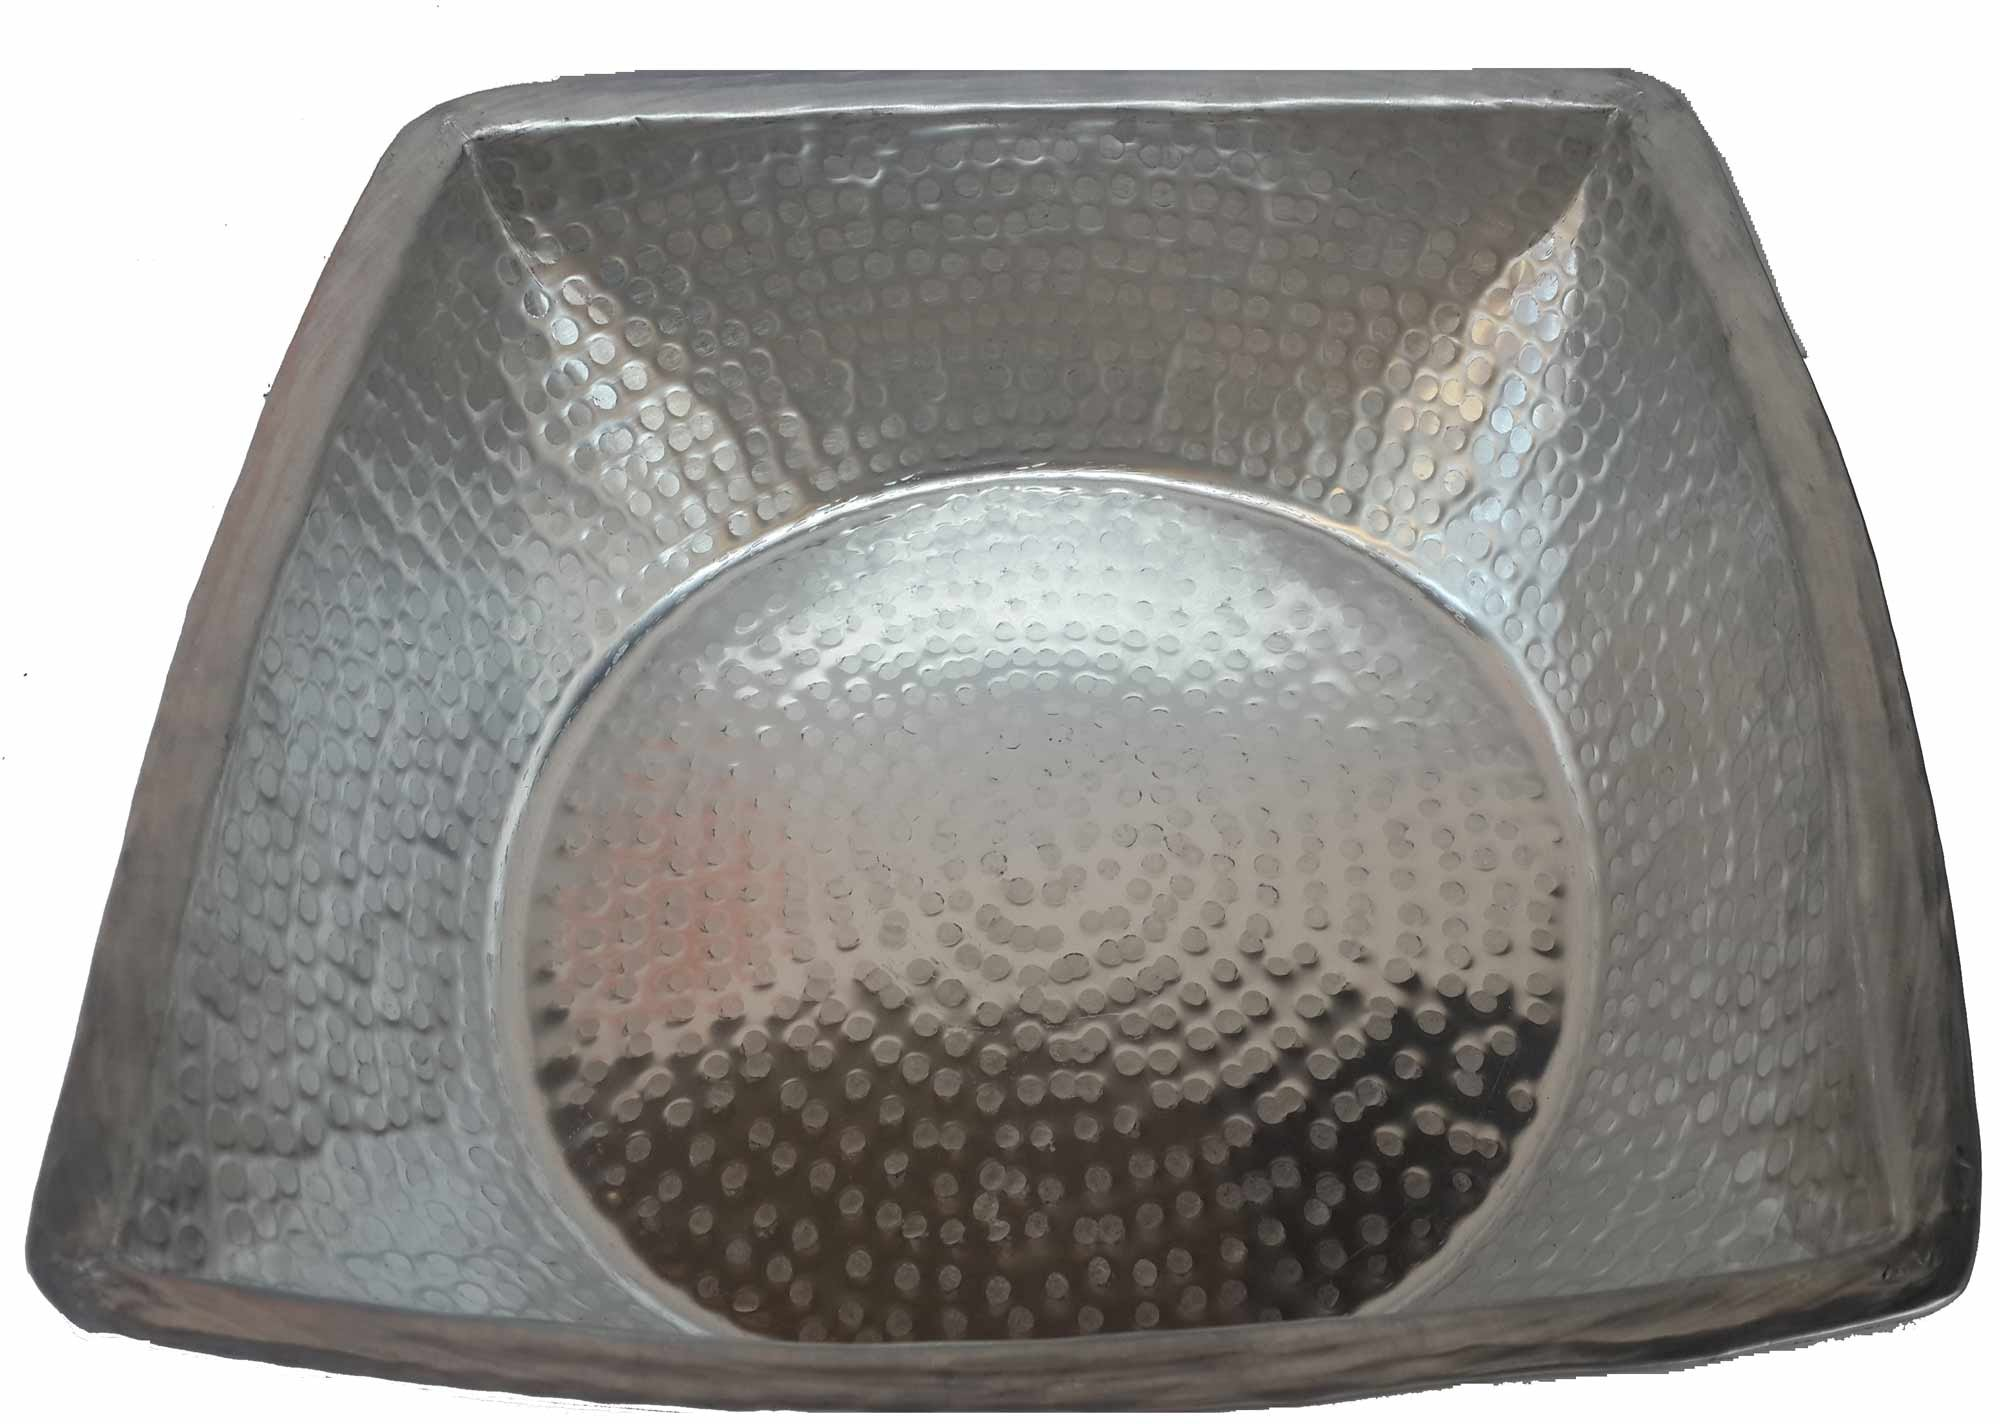 Egypt gift shops Hand Hammered Square Light Weight Silver Foot Wash Massage Spa Cleansing Bathtub Basin Beauty Salon Pedicure Relax Skin Toes Care by Egypt gift shops (Image #1)